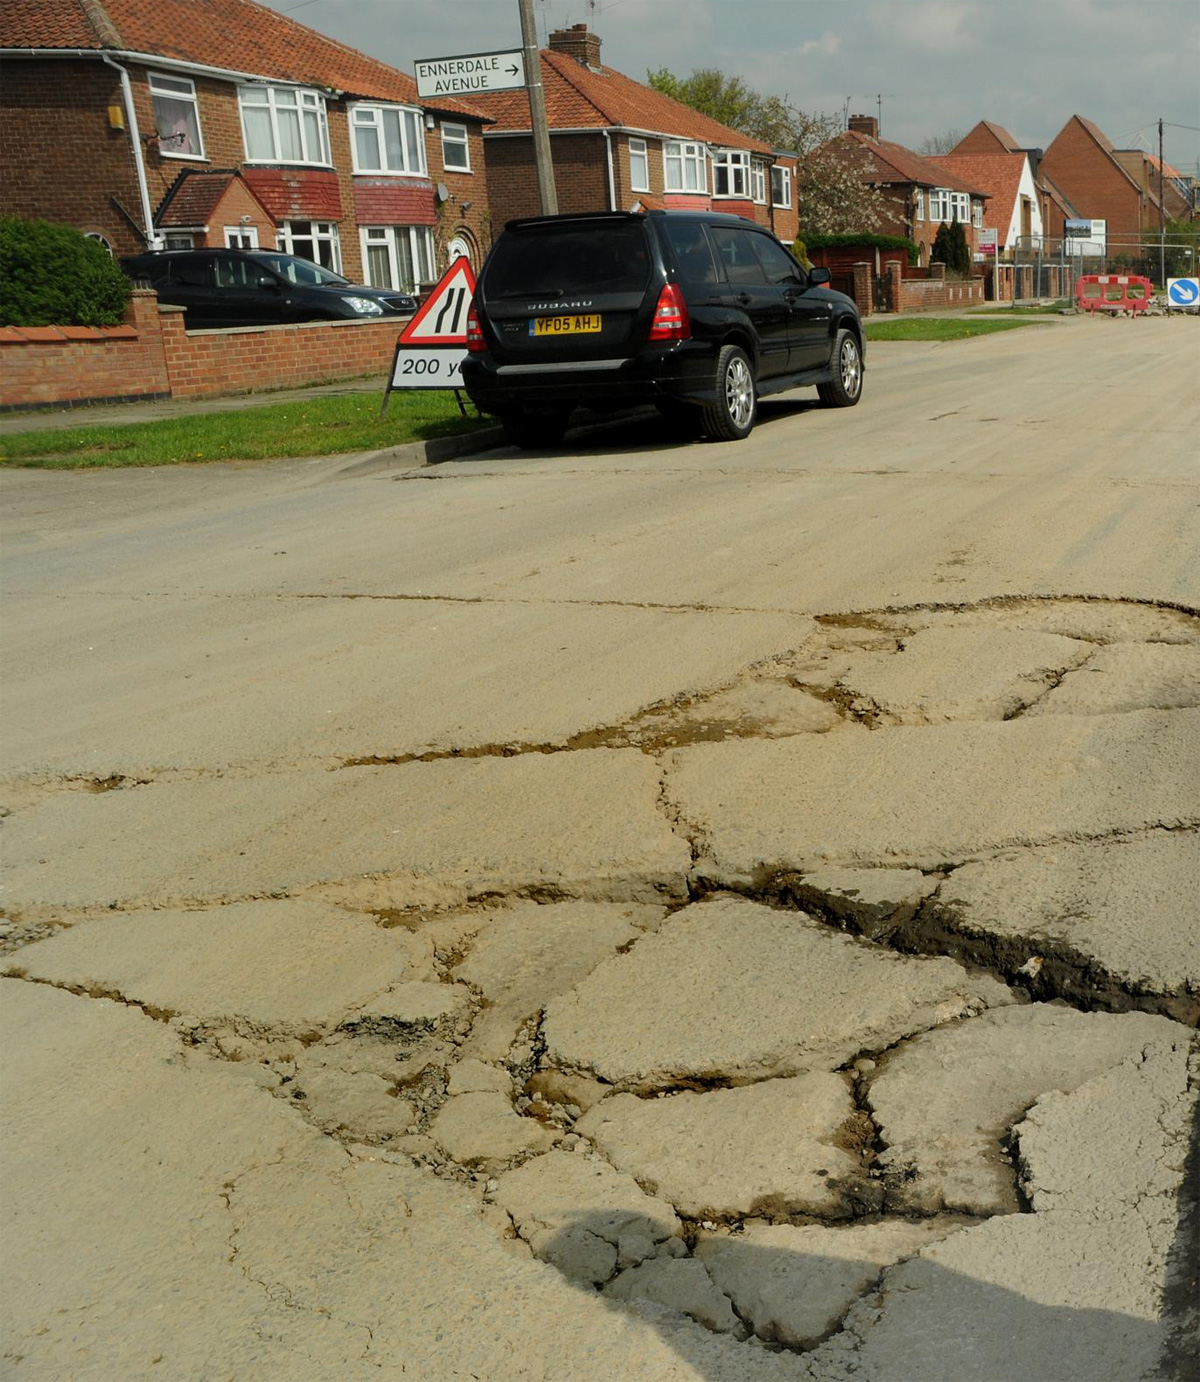 Roads damaged due to lorries going to and from the Derwenthorpe site